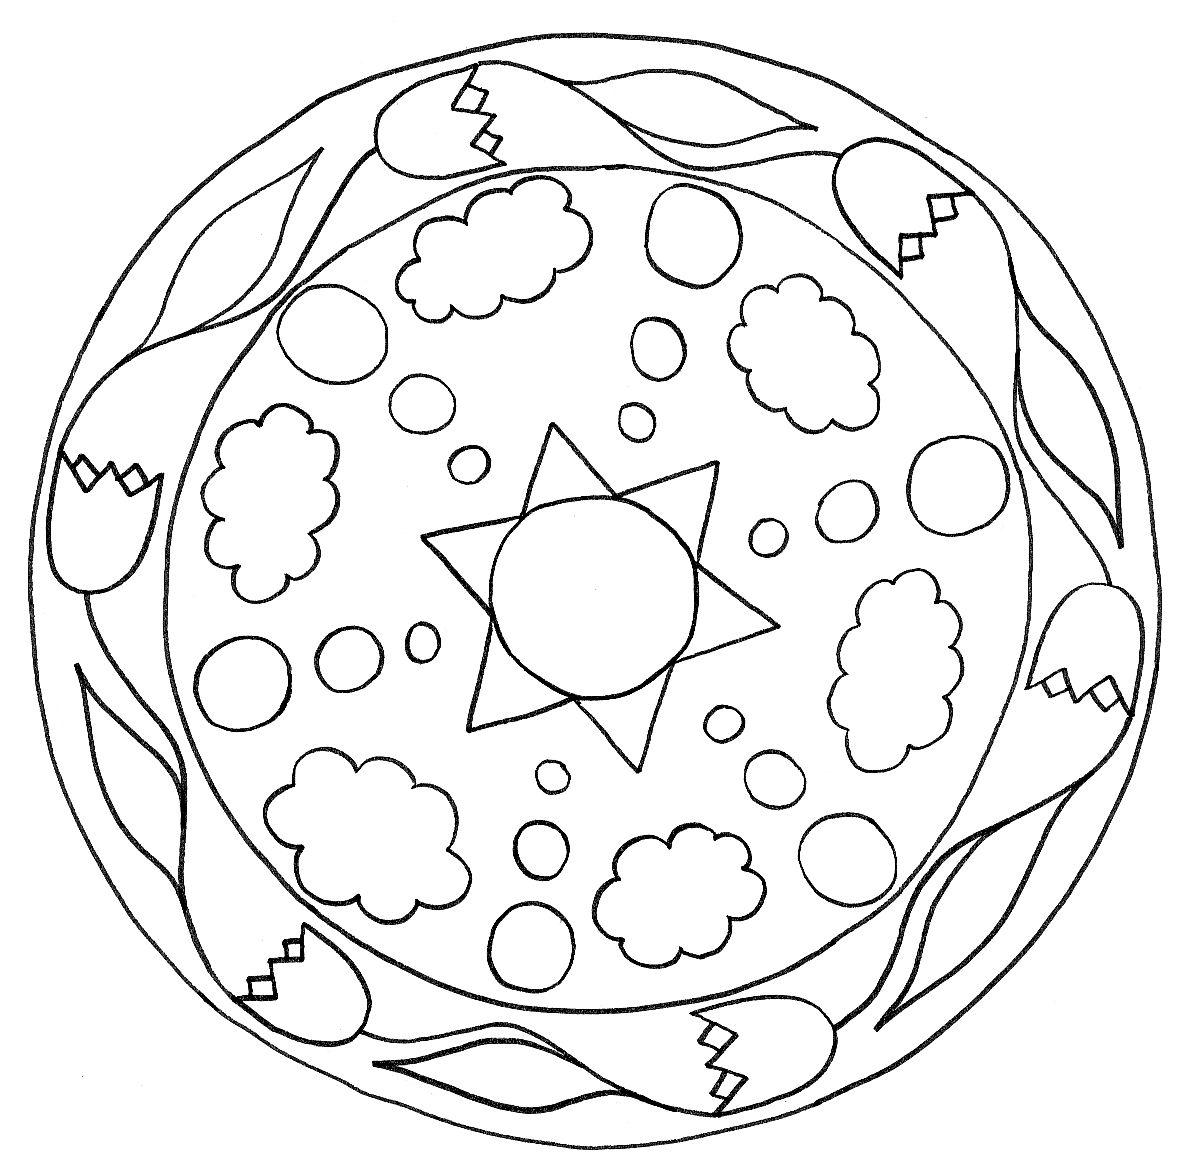 simple mandalas for kids coloring - Free Colouring Pages For Children